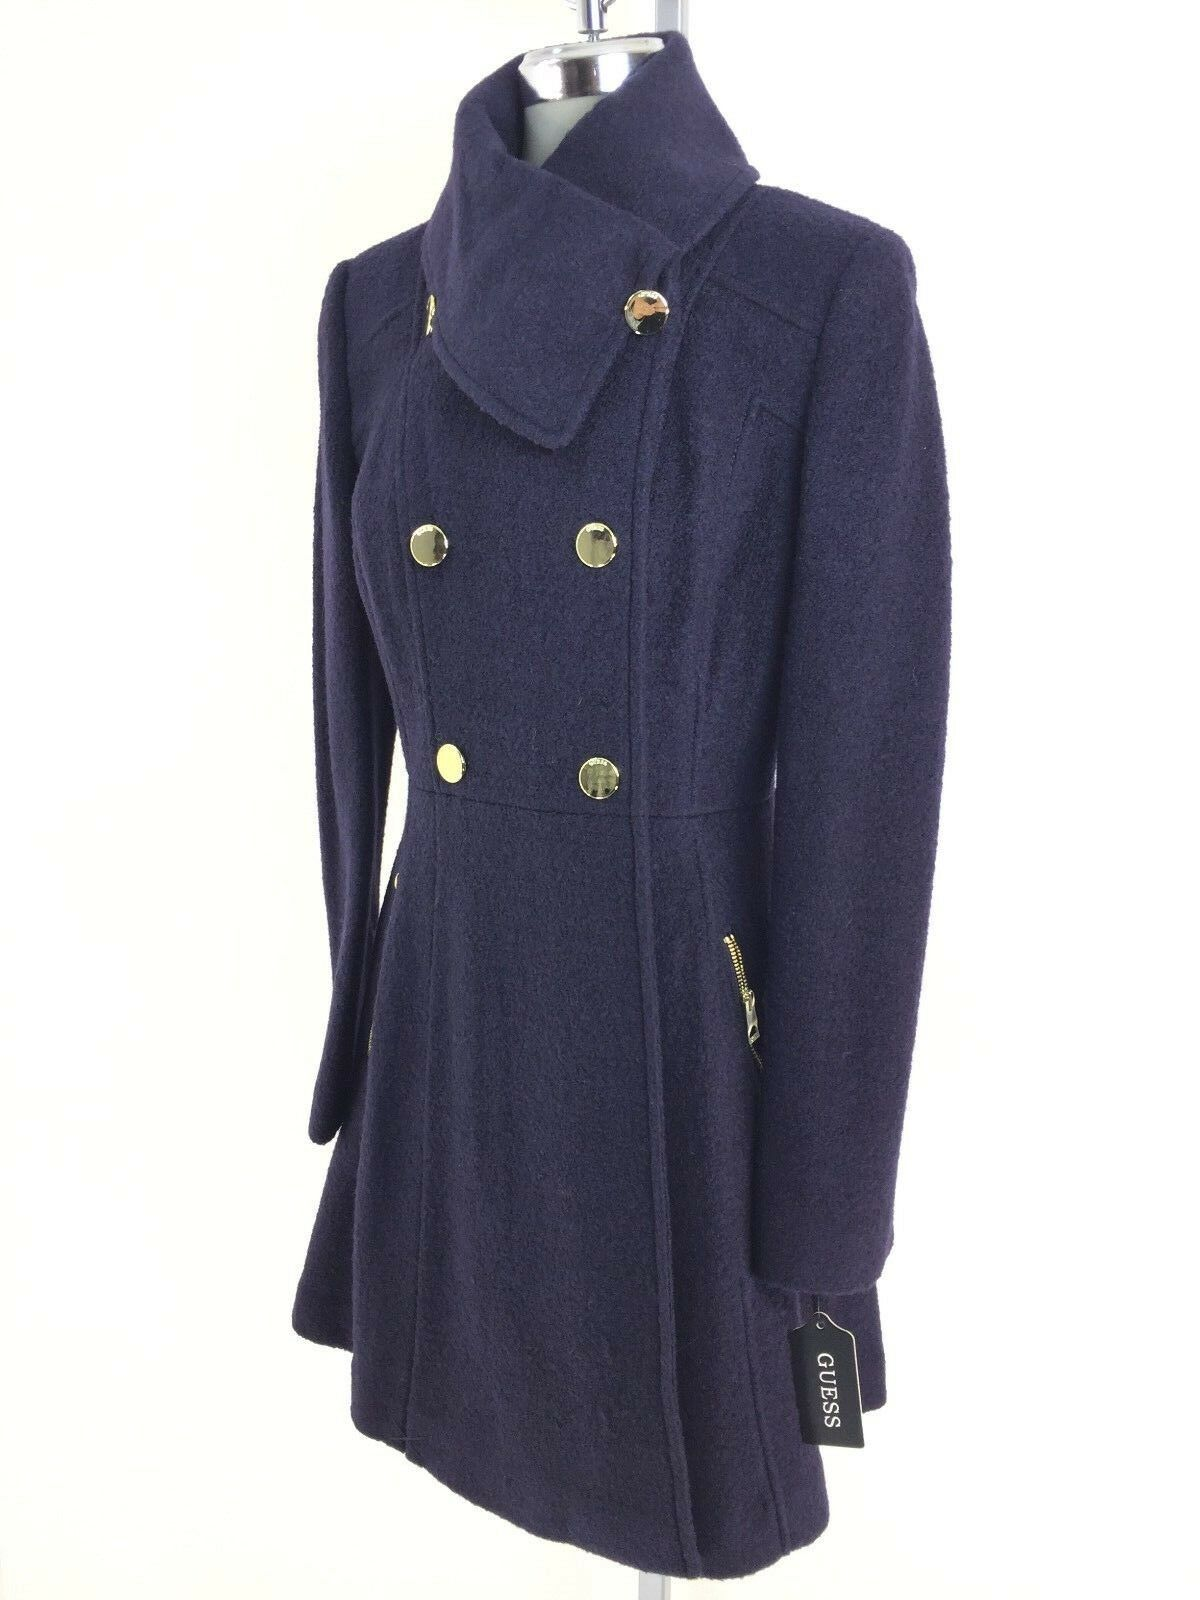 GUESS New WT Modern NAVY Shawl Collar Double Breasted Fit-&-Flare Coat S M L